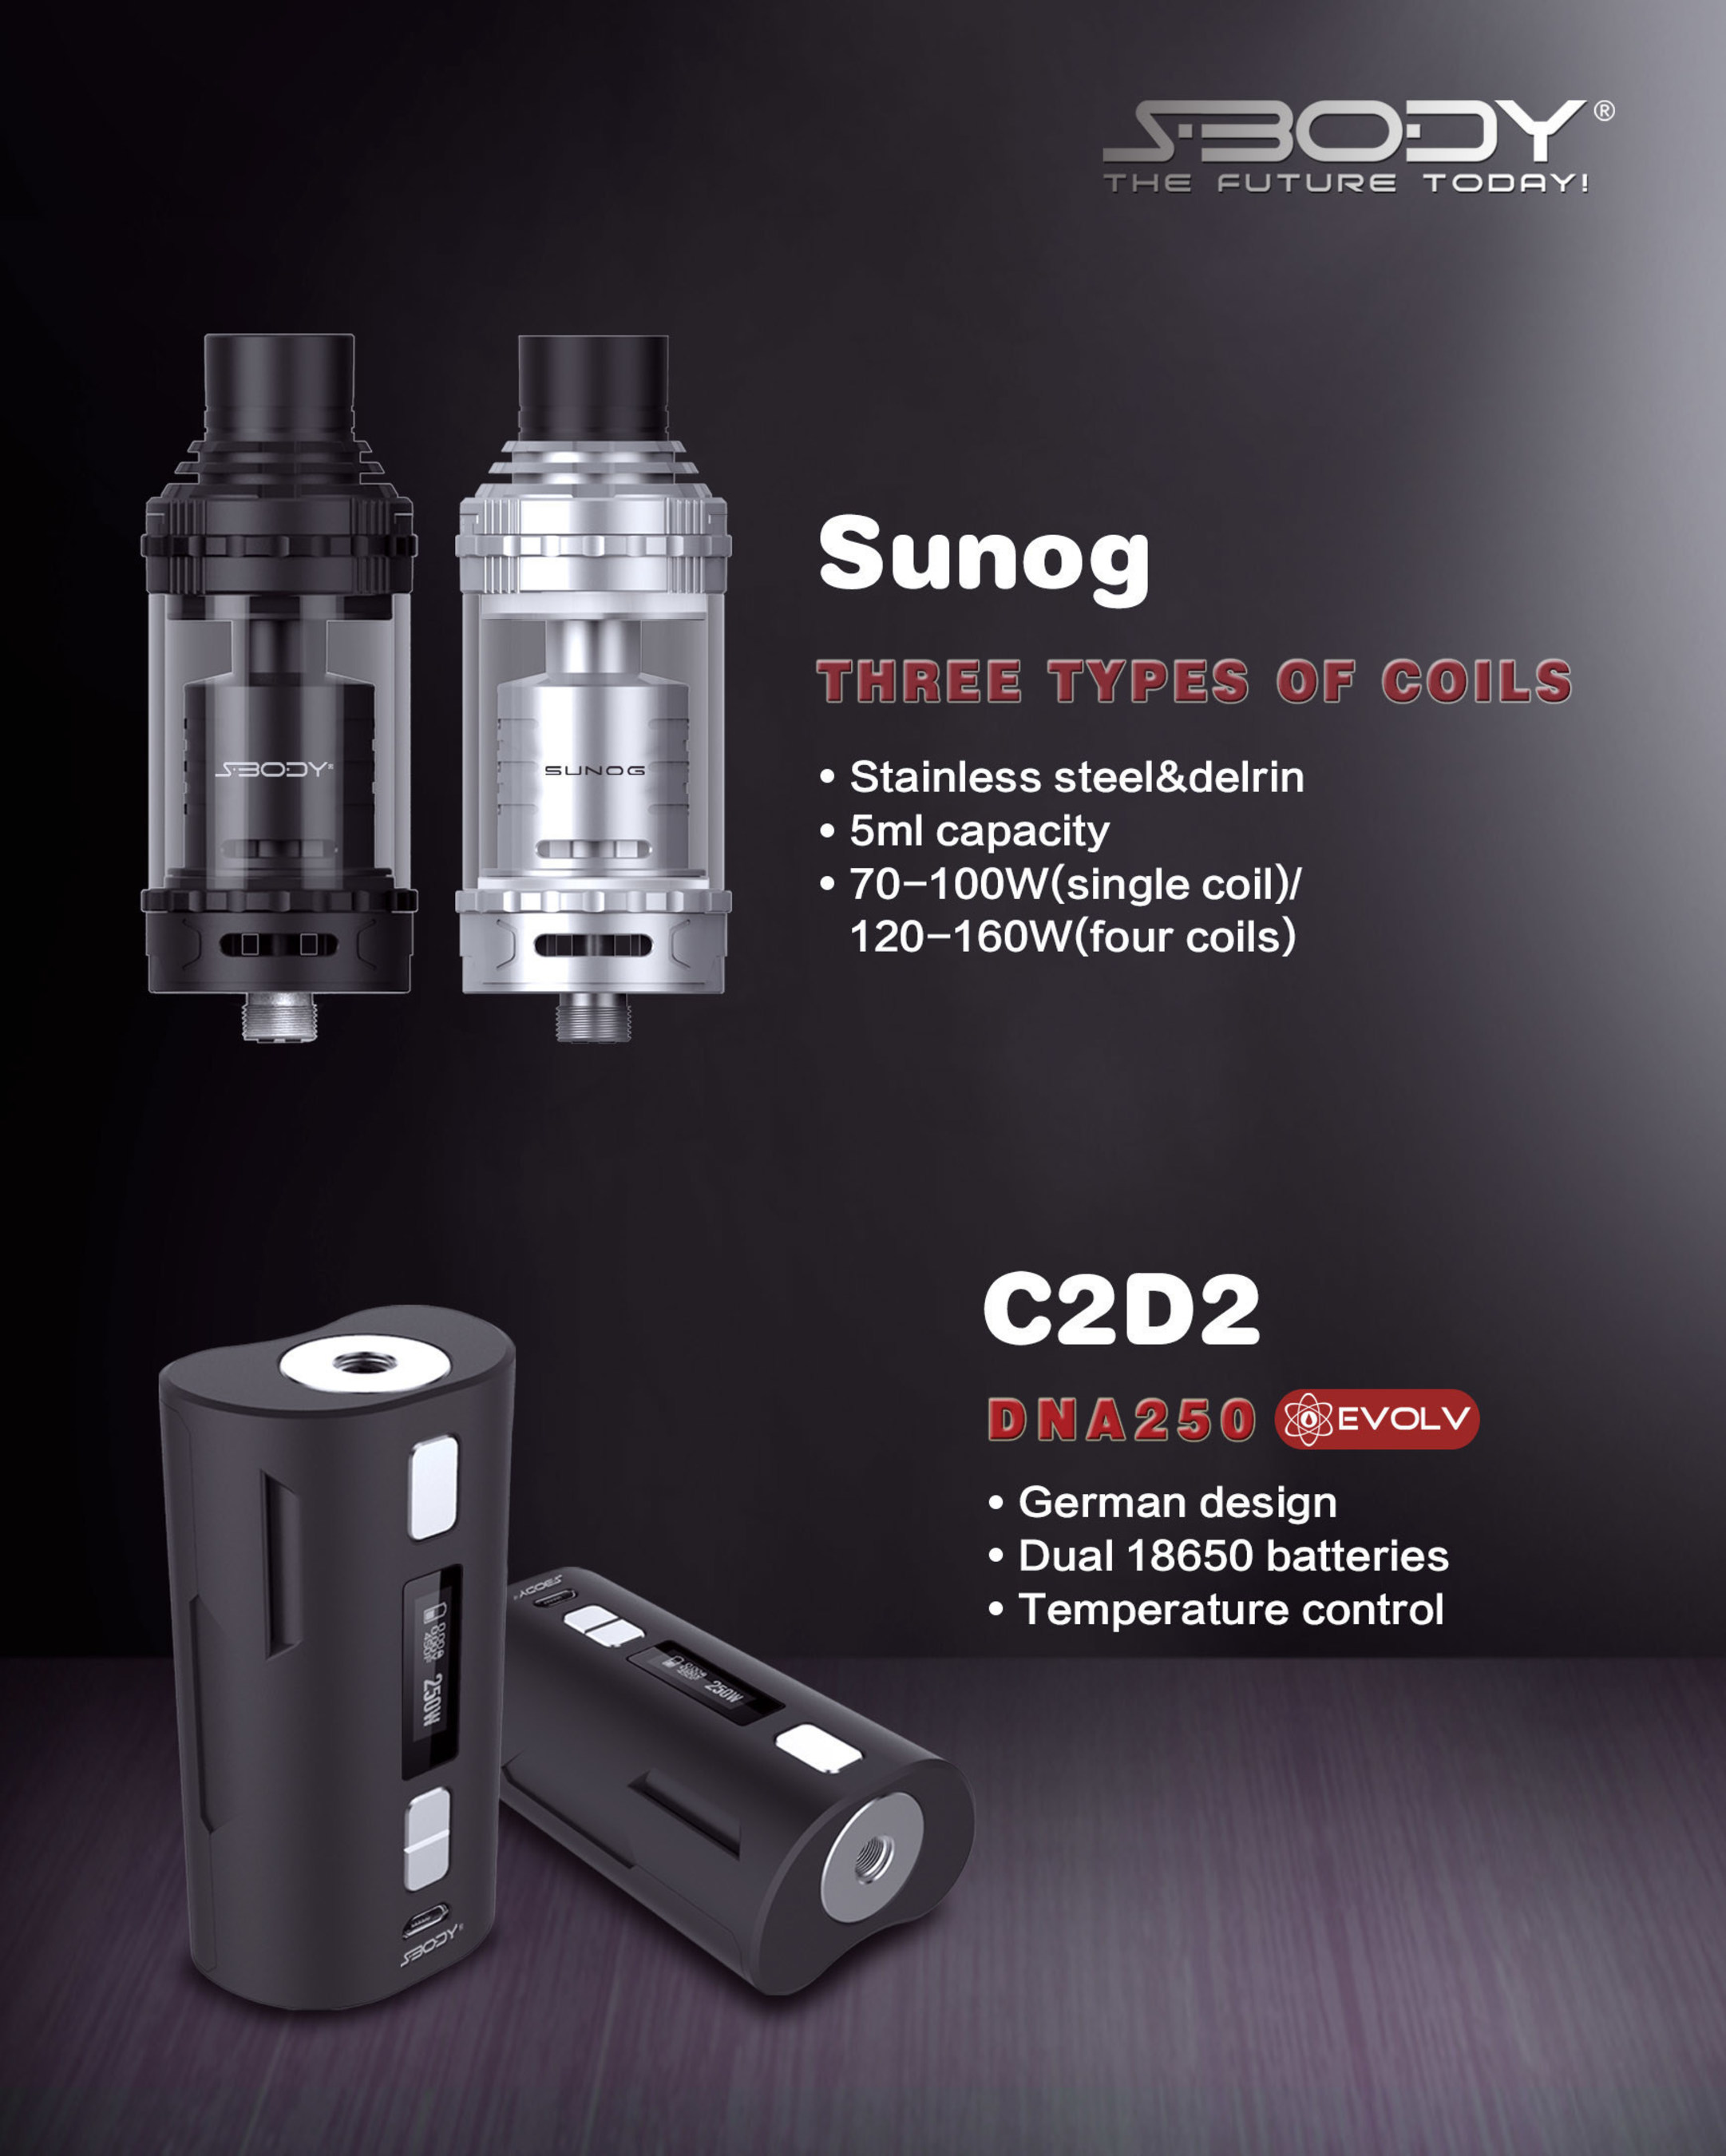 S-BODY Sunog RTA tank and VapeDroid C2D2 dna250w mod